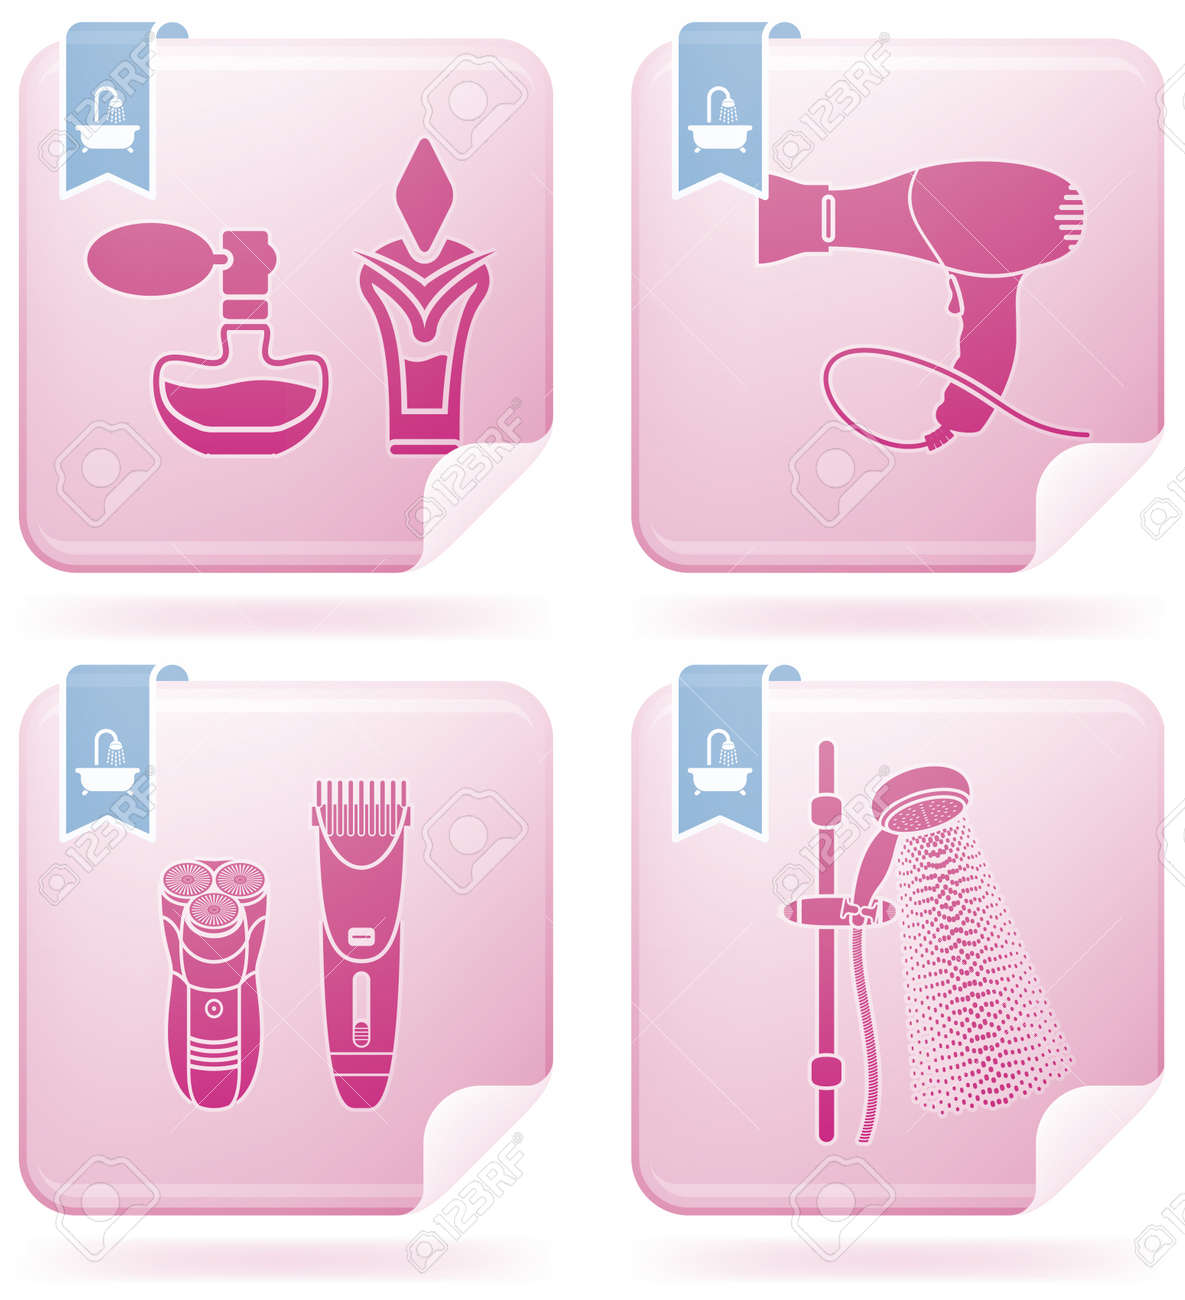 Bathroom Utensils And Other Related Everyday Things Royalty Free Cliparts Vectors And Stock Illustration Image 6955533